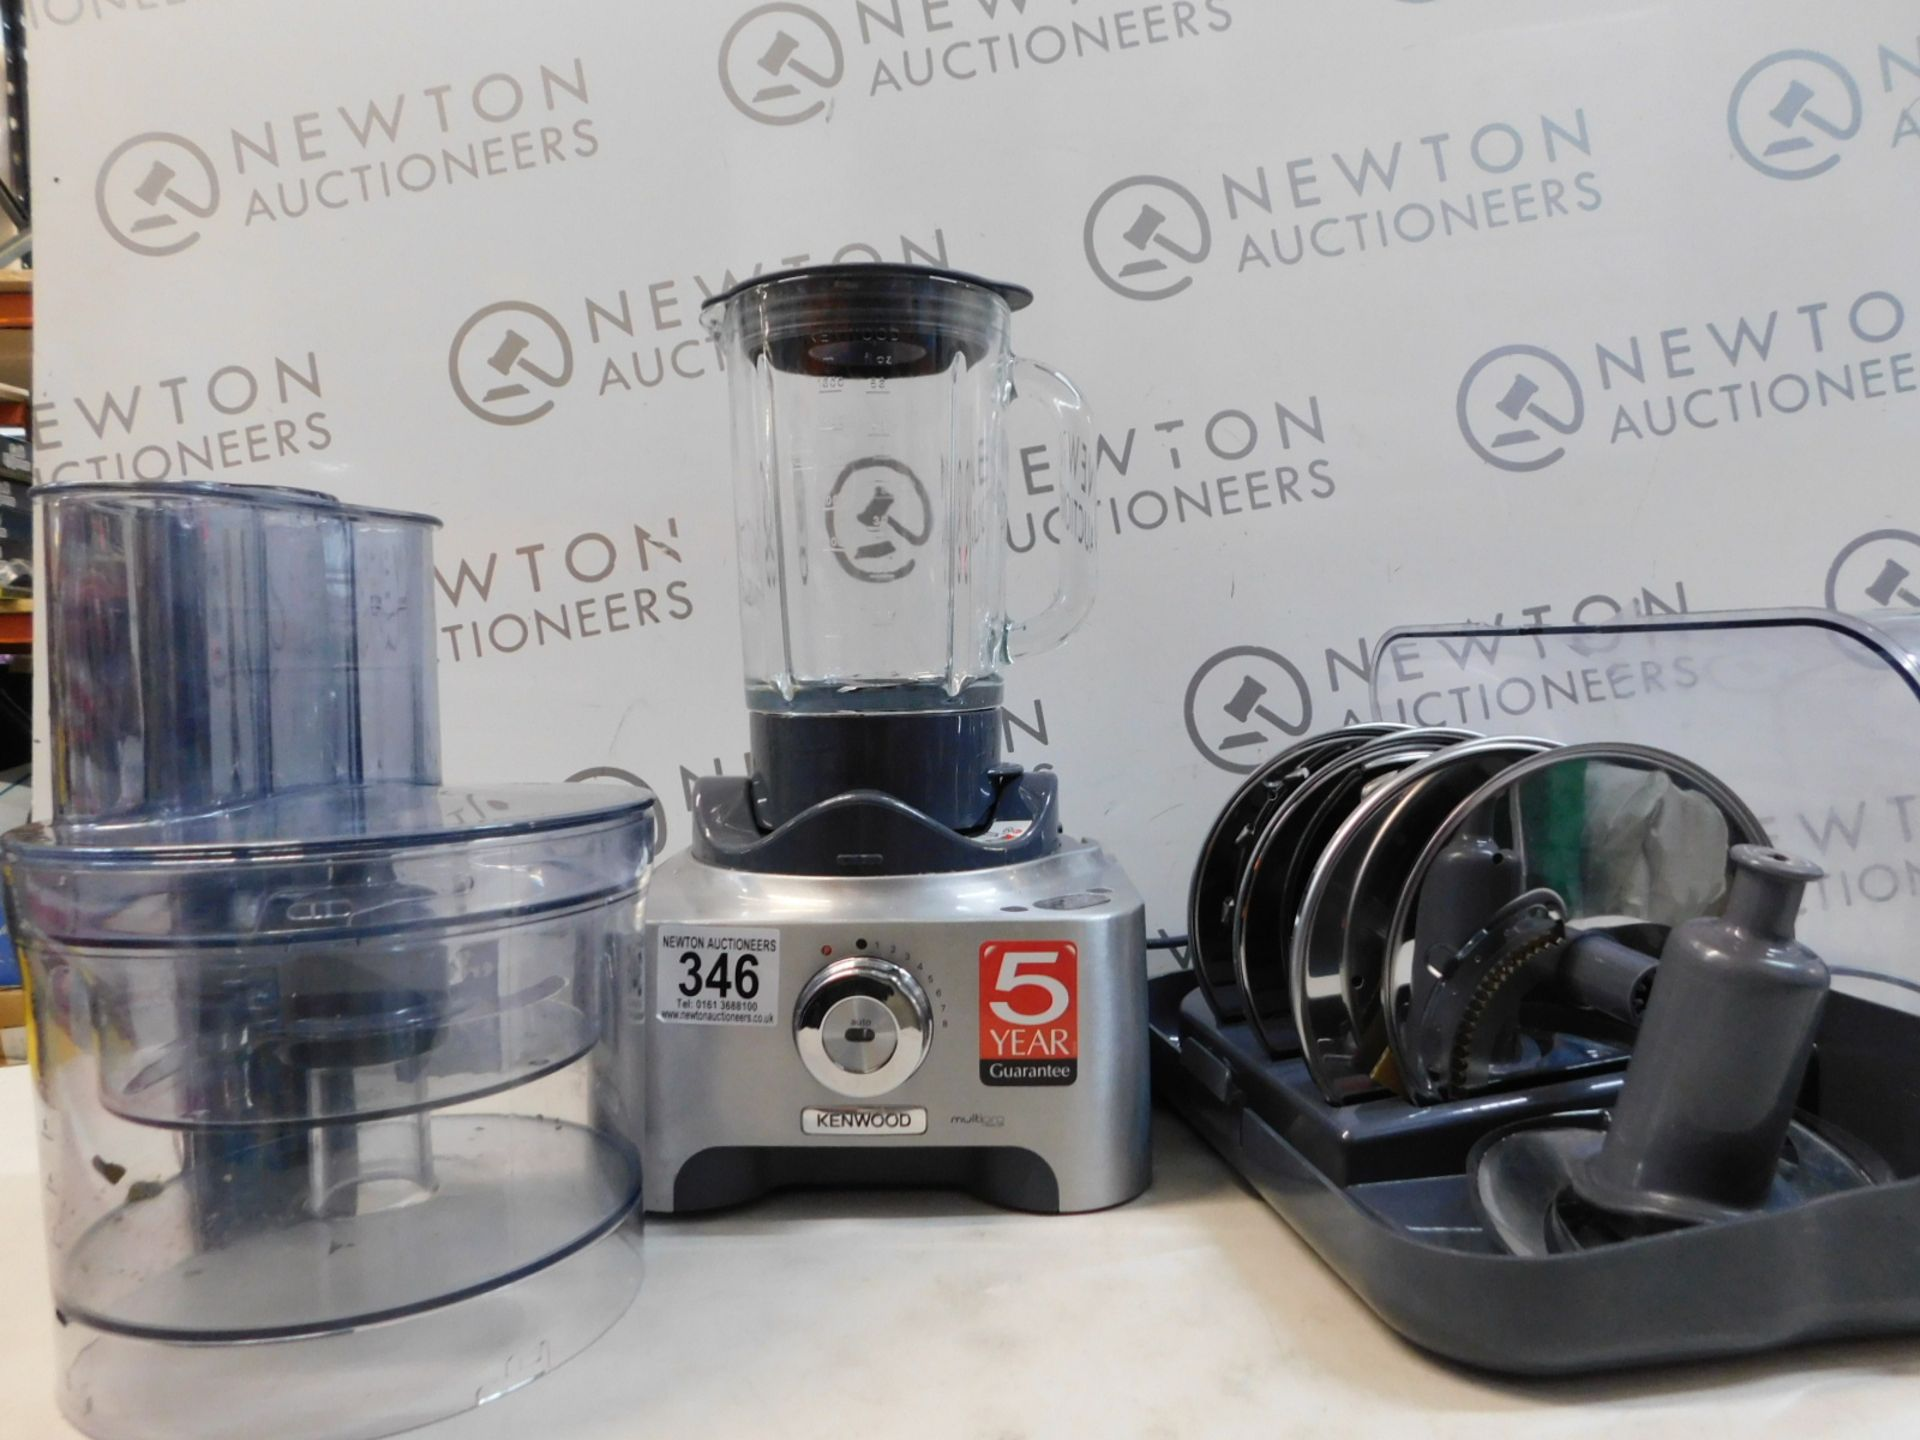 1 KENWOOD MULTIPRO EXCEL FOOD PROCESSOR FPM91 WITH AUTO VARIABLE SPEED CONTROL RRP £499